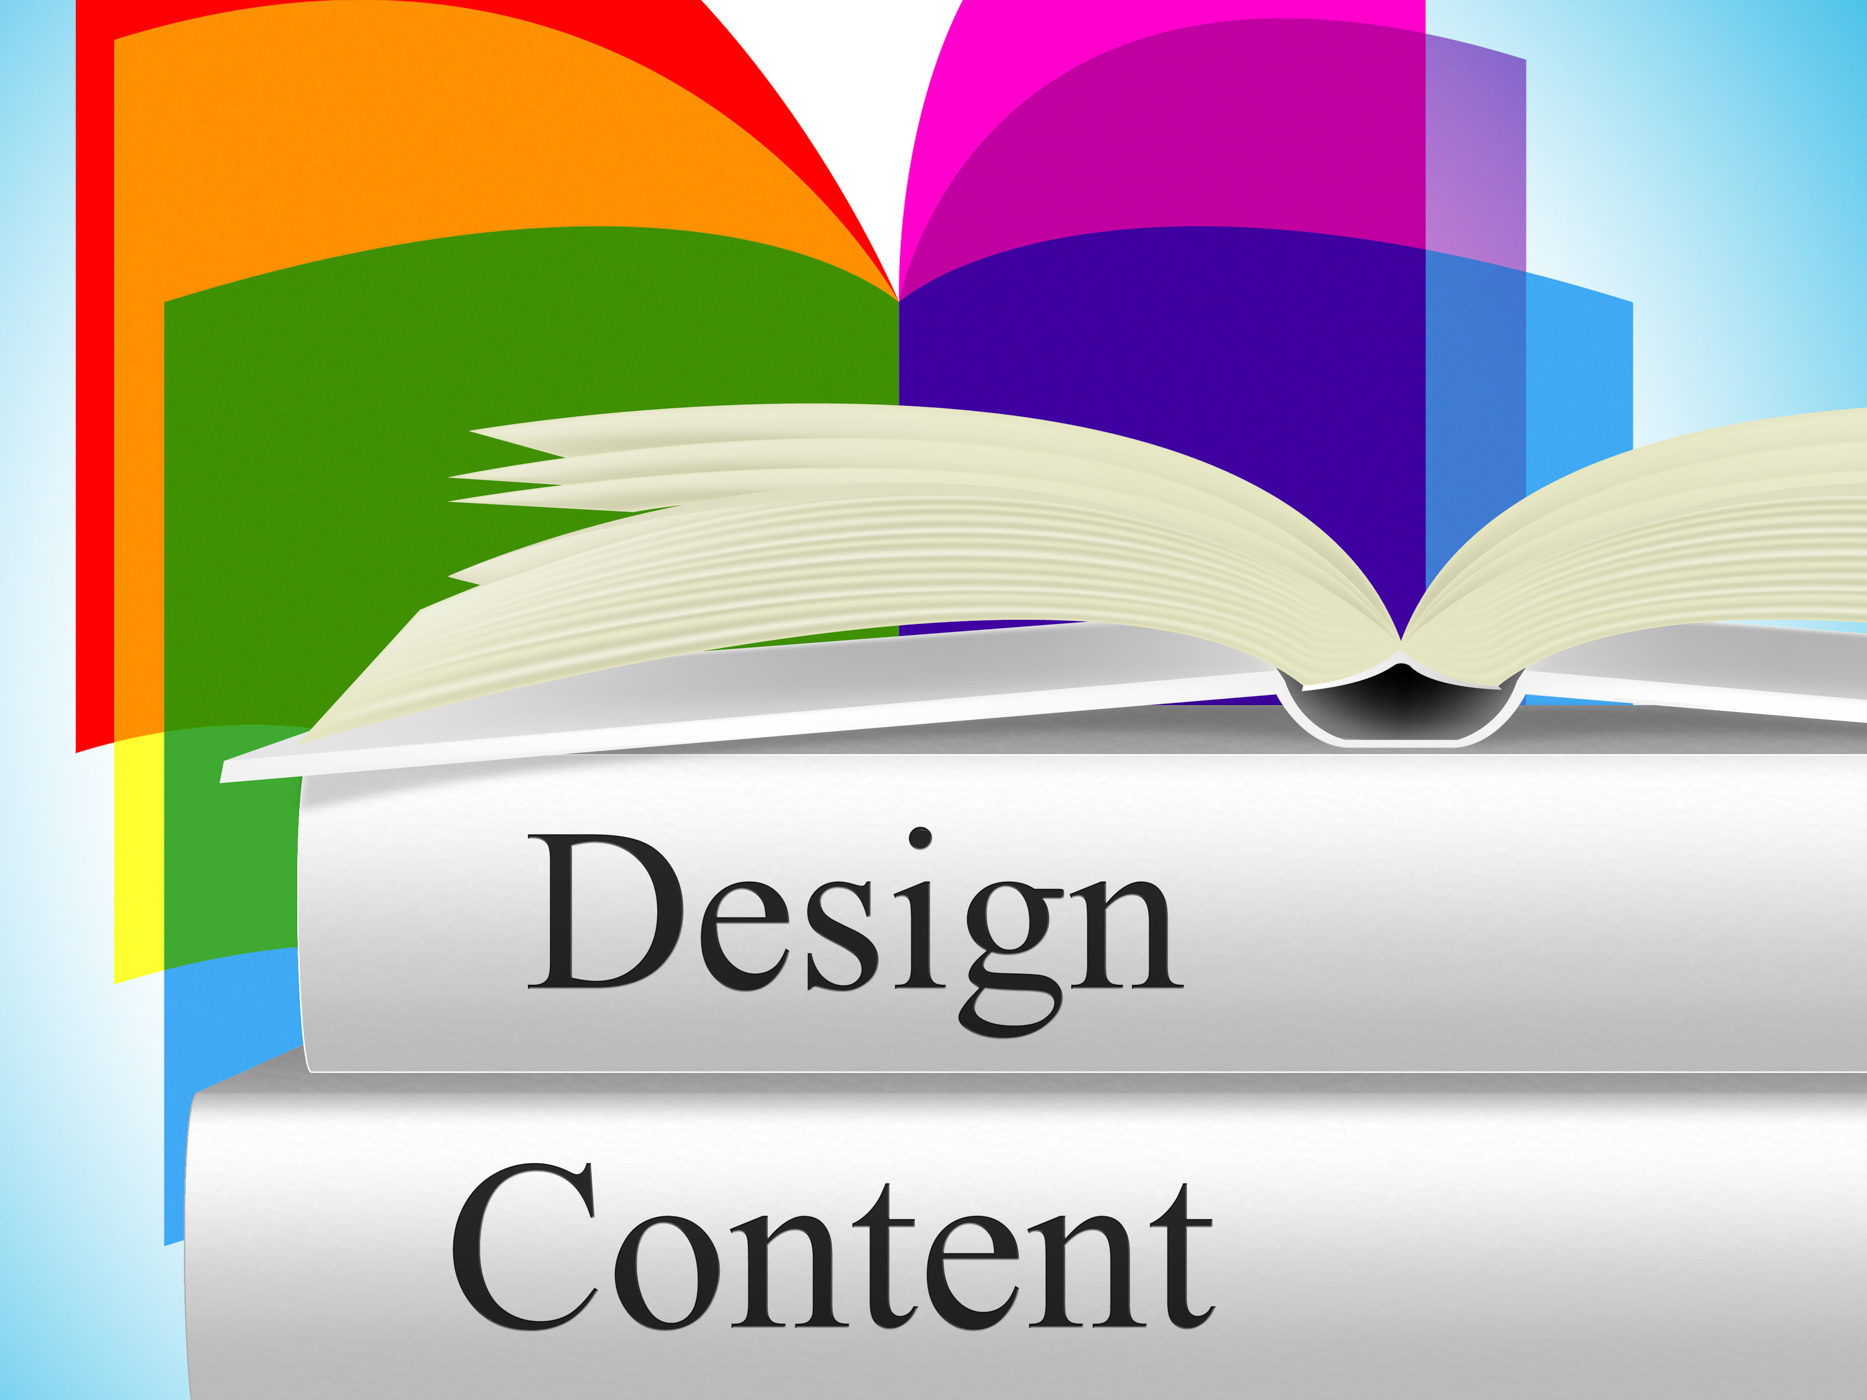 Designs Content Represents Concept Model And Plan, Layout, Lay-outs, Lay-out, Layouts, HQ Photo